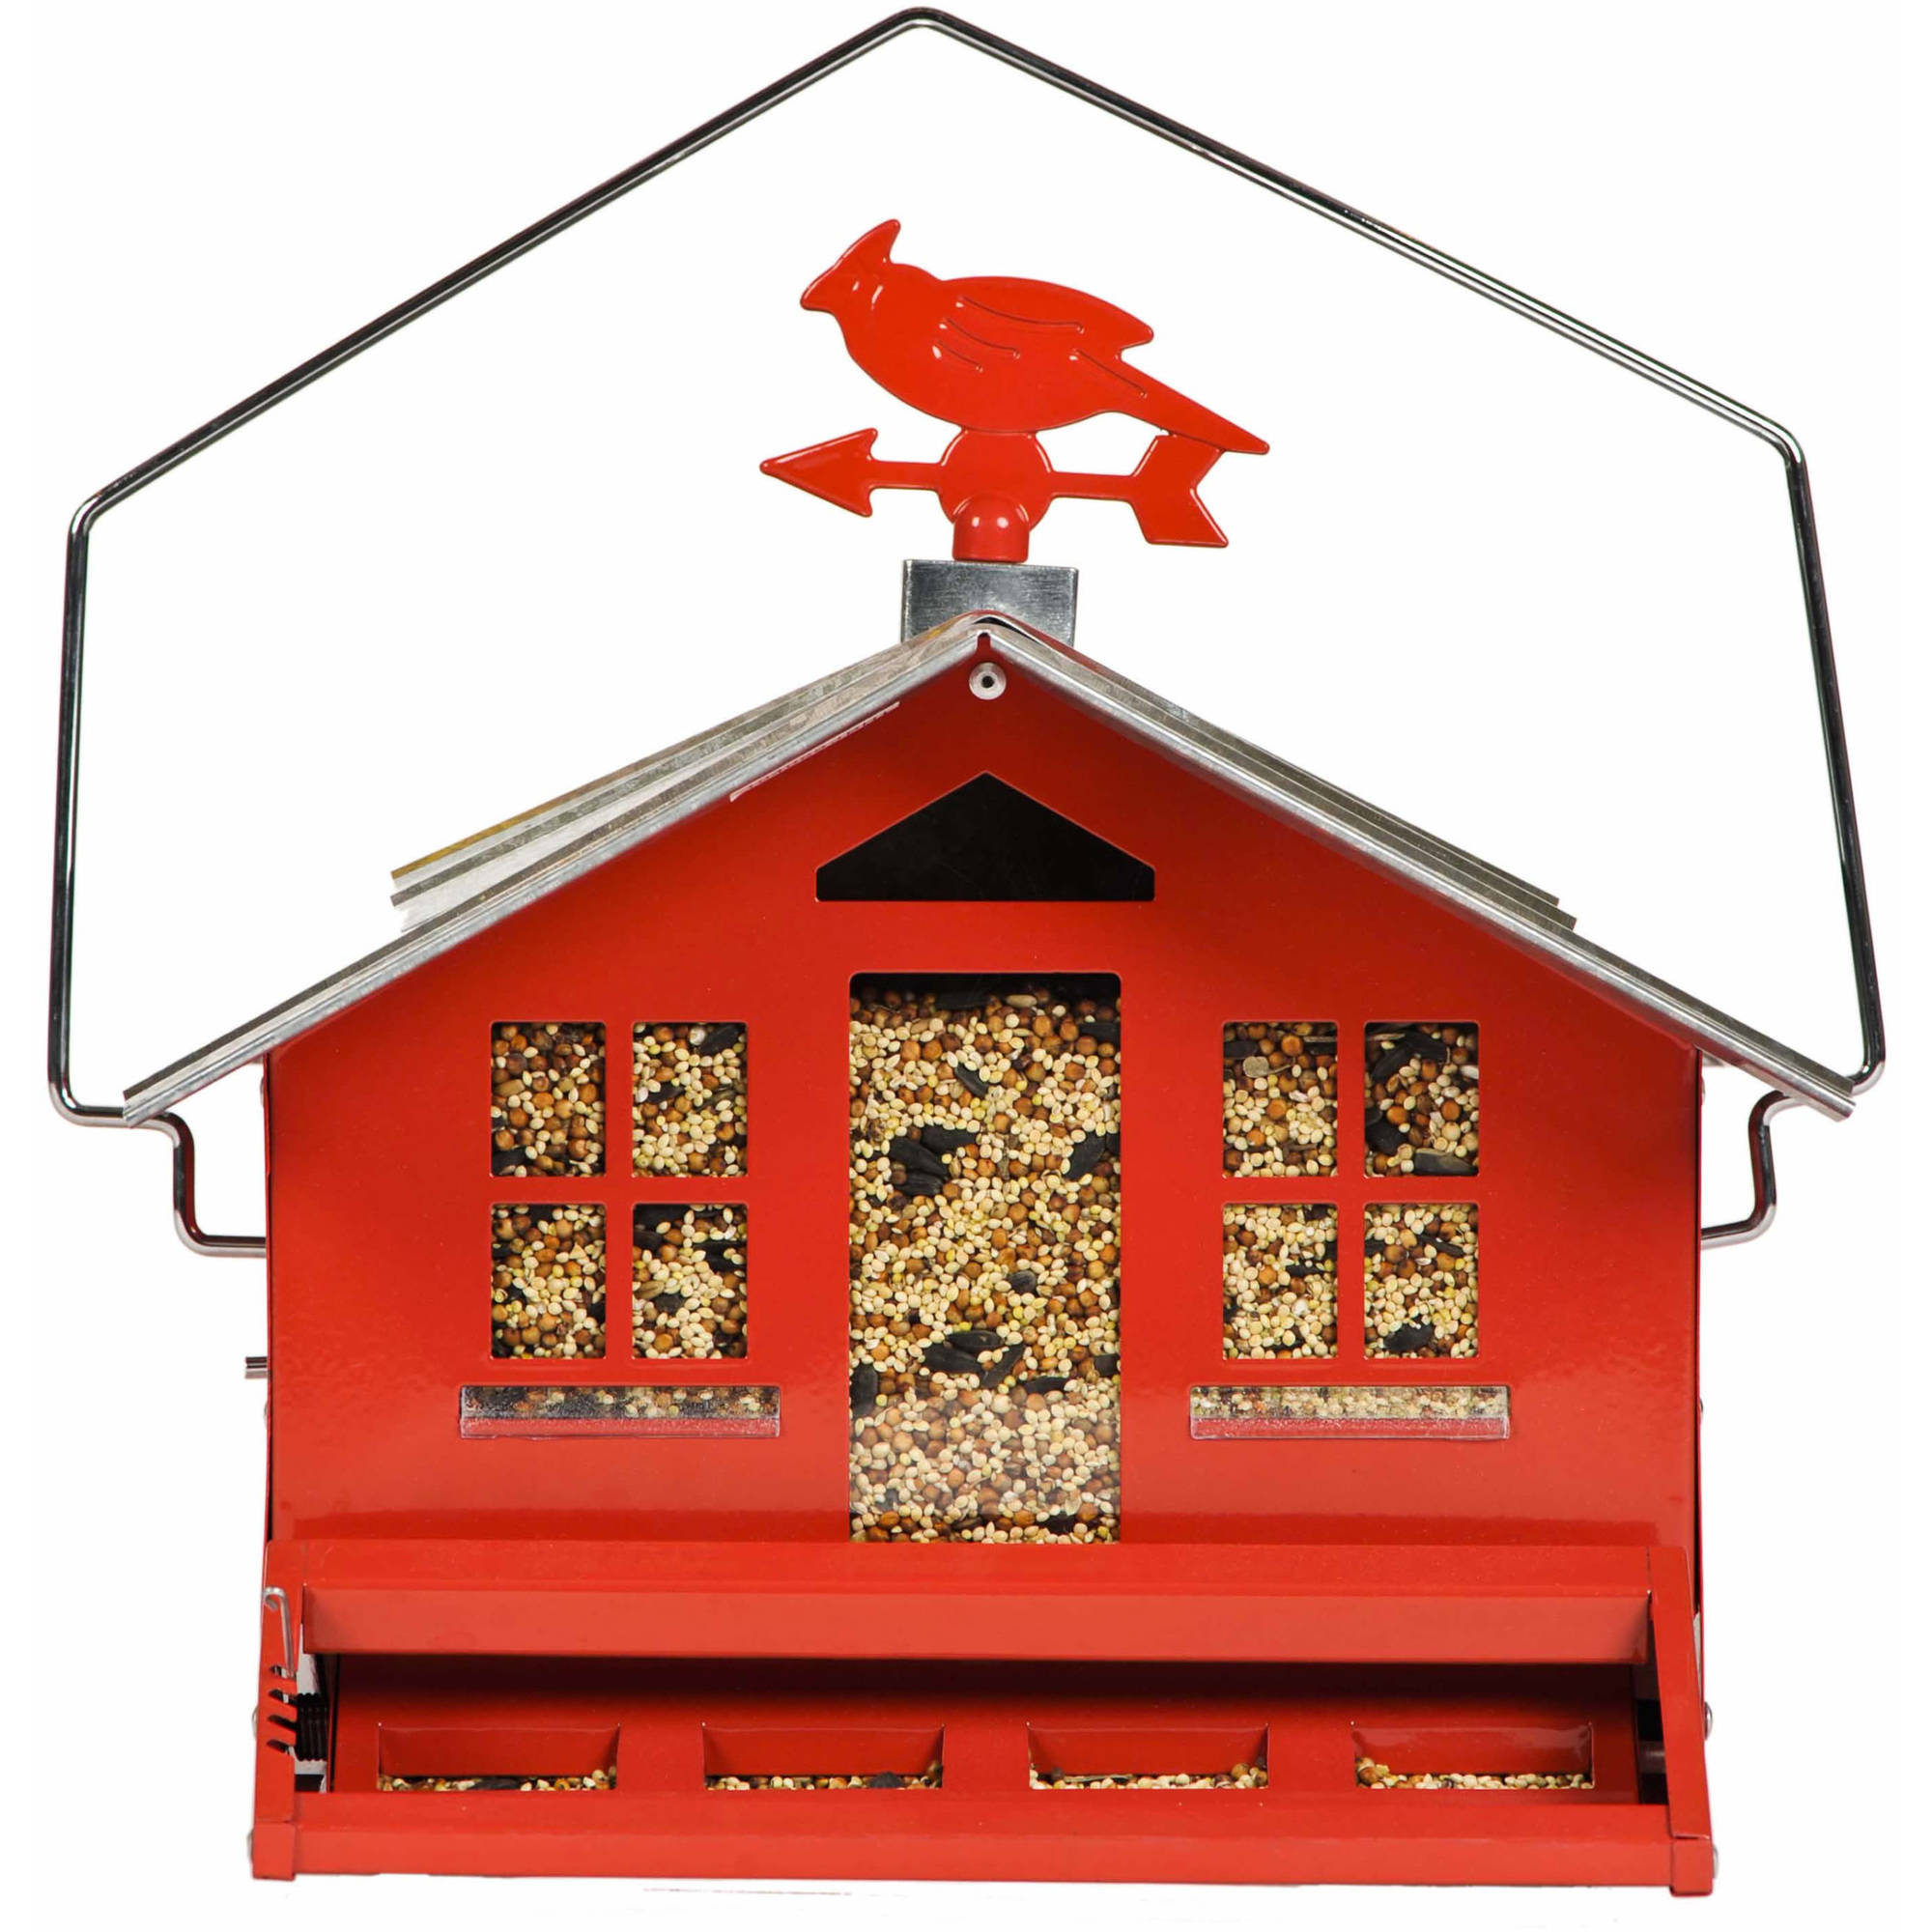 Perky-Pet Squirrel-Be-Gone II Country Style Wild Birdfeeder by Perky-Pet